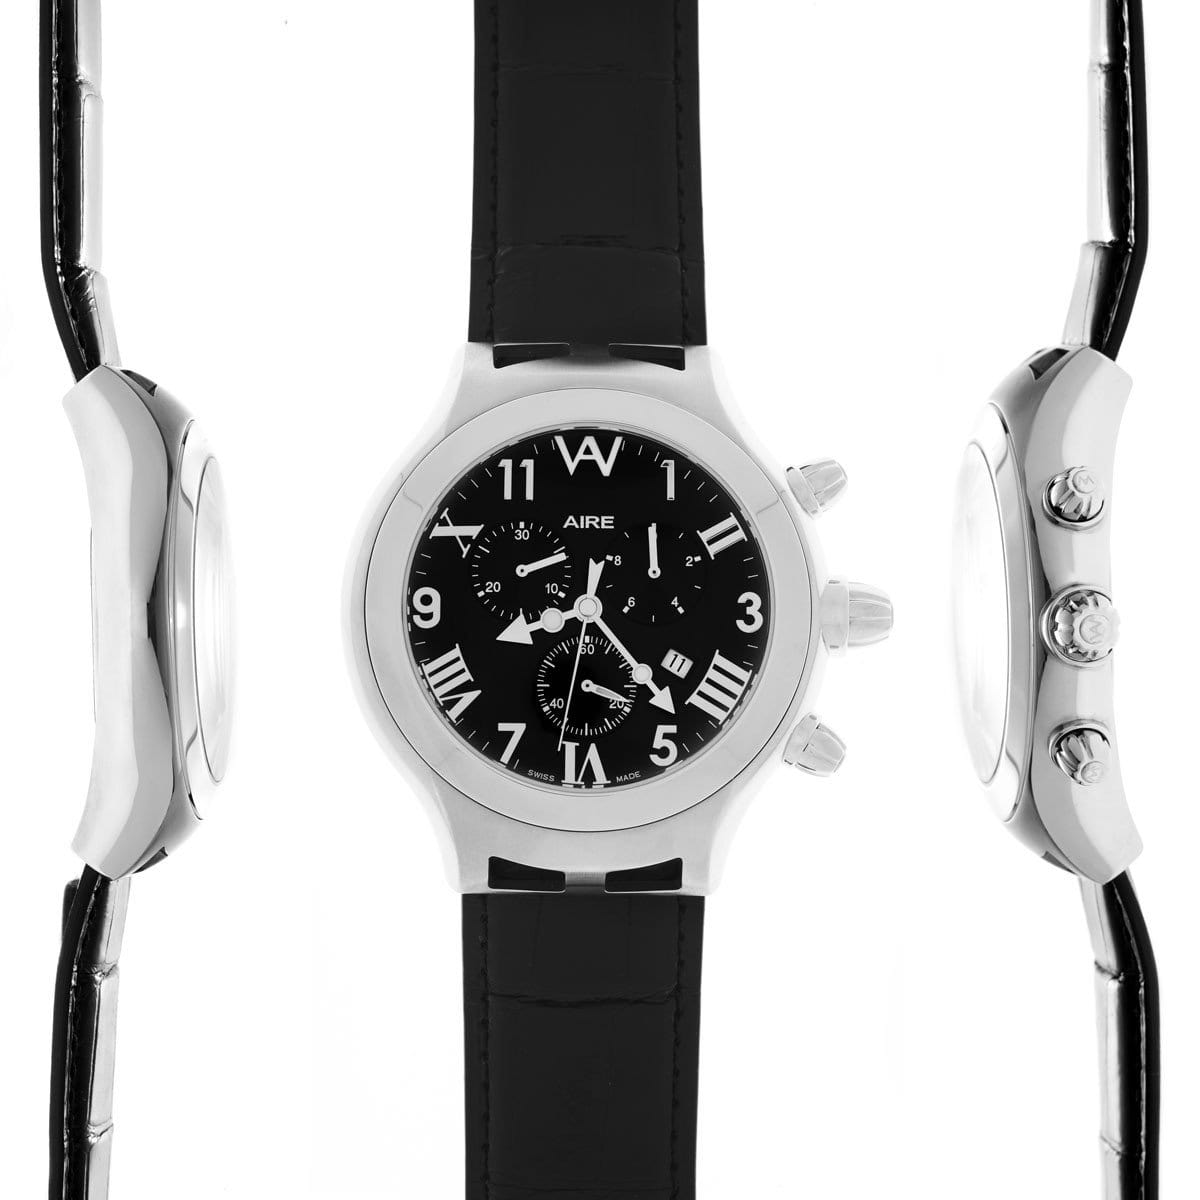 PARLAY MEN'S WATCH - Chris Aire Fine Jewelry & Timepieces